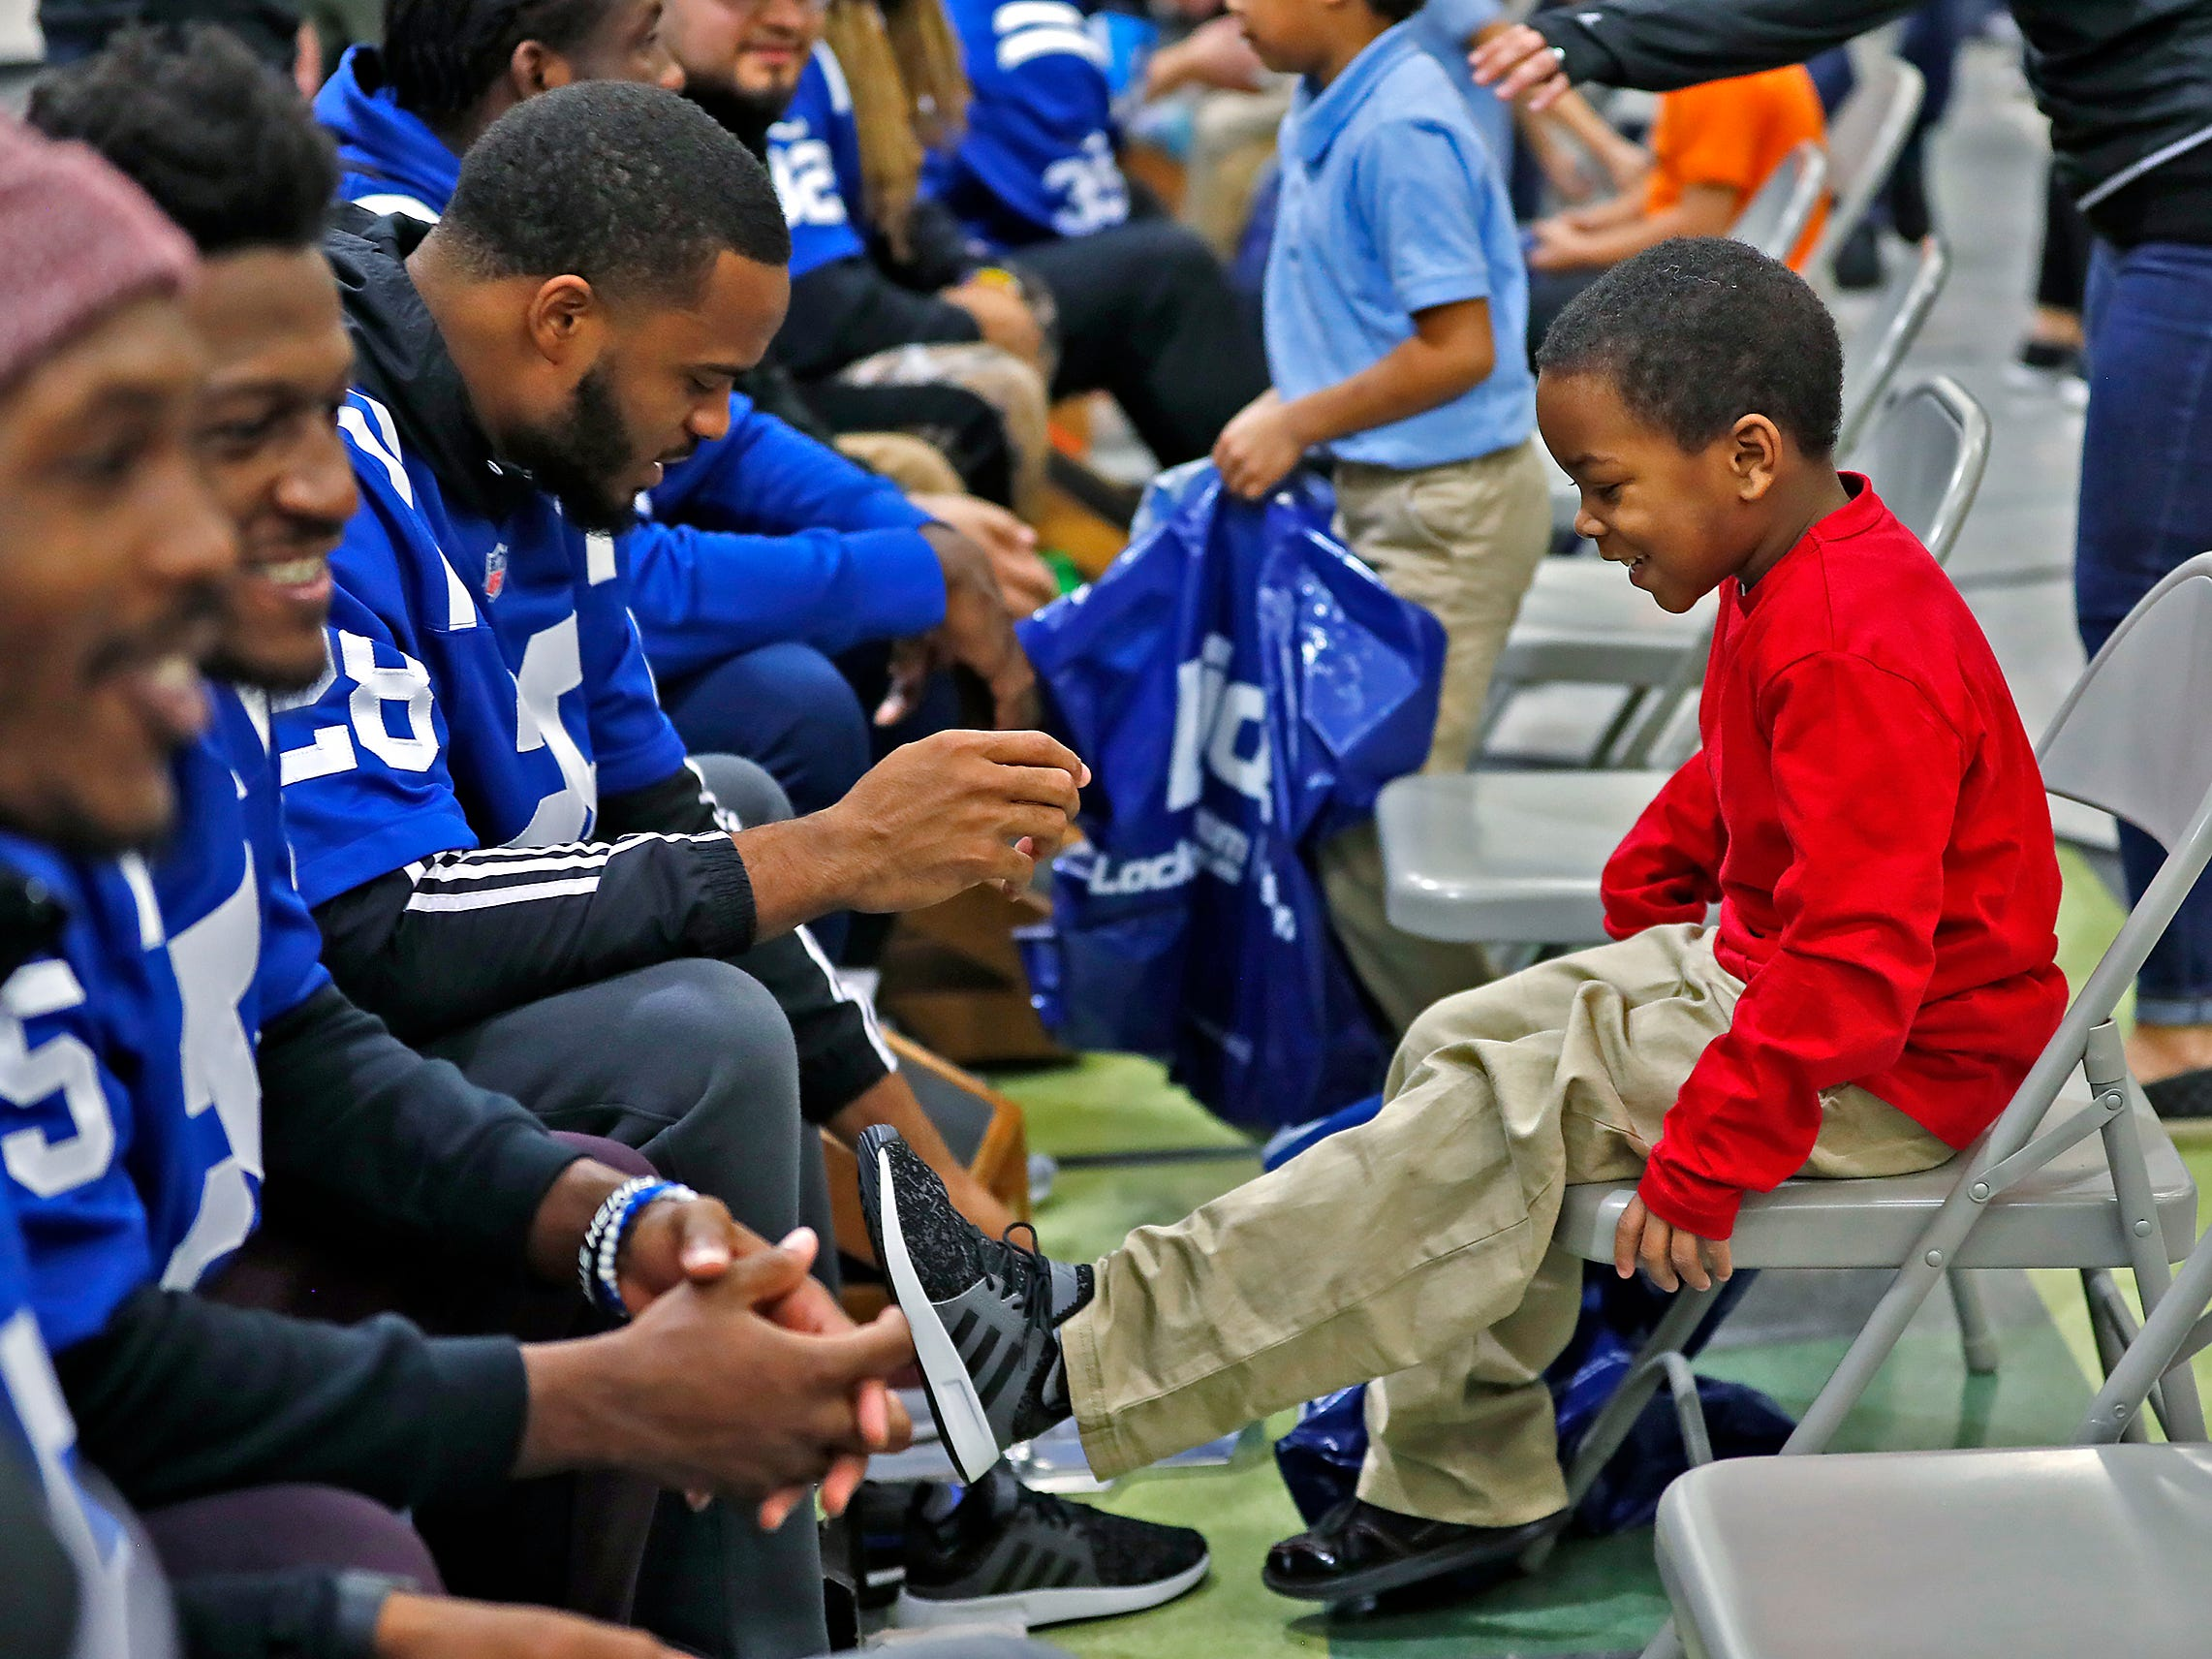 Indianapolis Colts Chris Milton puts new shoes on at Brookside School 54, Monday, Dec. 3, 2018.  Colts players and staff joined as LIDS Sports and its parent company Genesco fit and gave new shoes, socks, hats, and snacks to students as part of the 13th annual Cold Feet, Warm Shoes event.